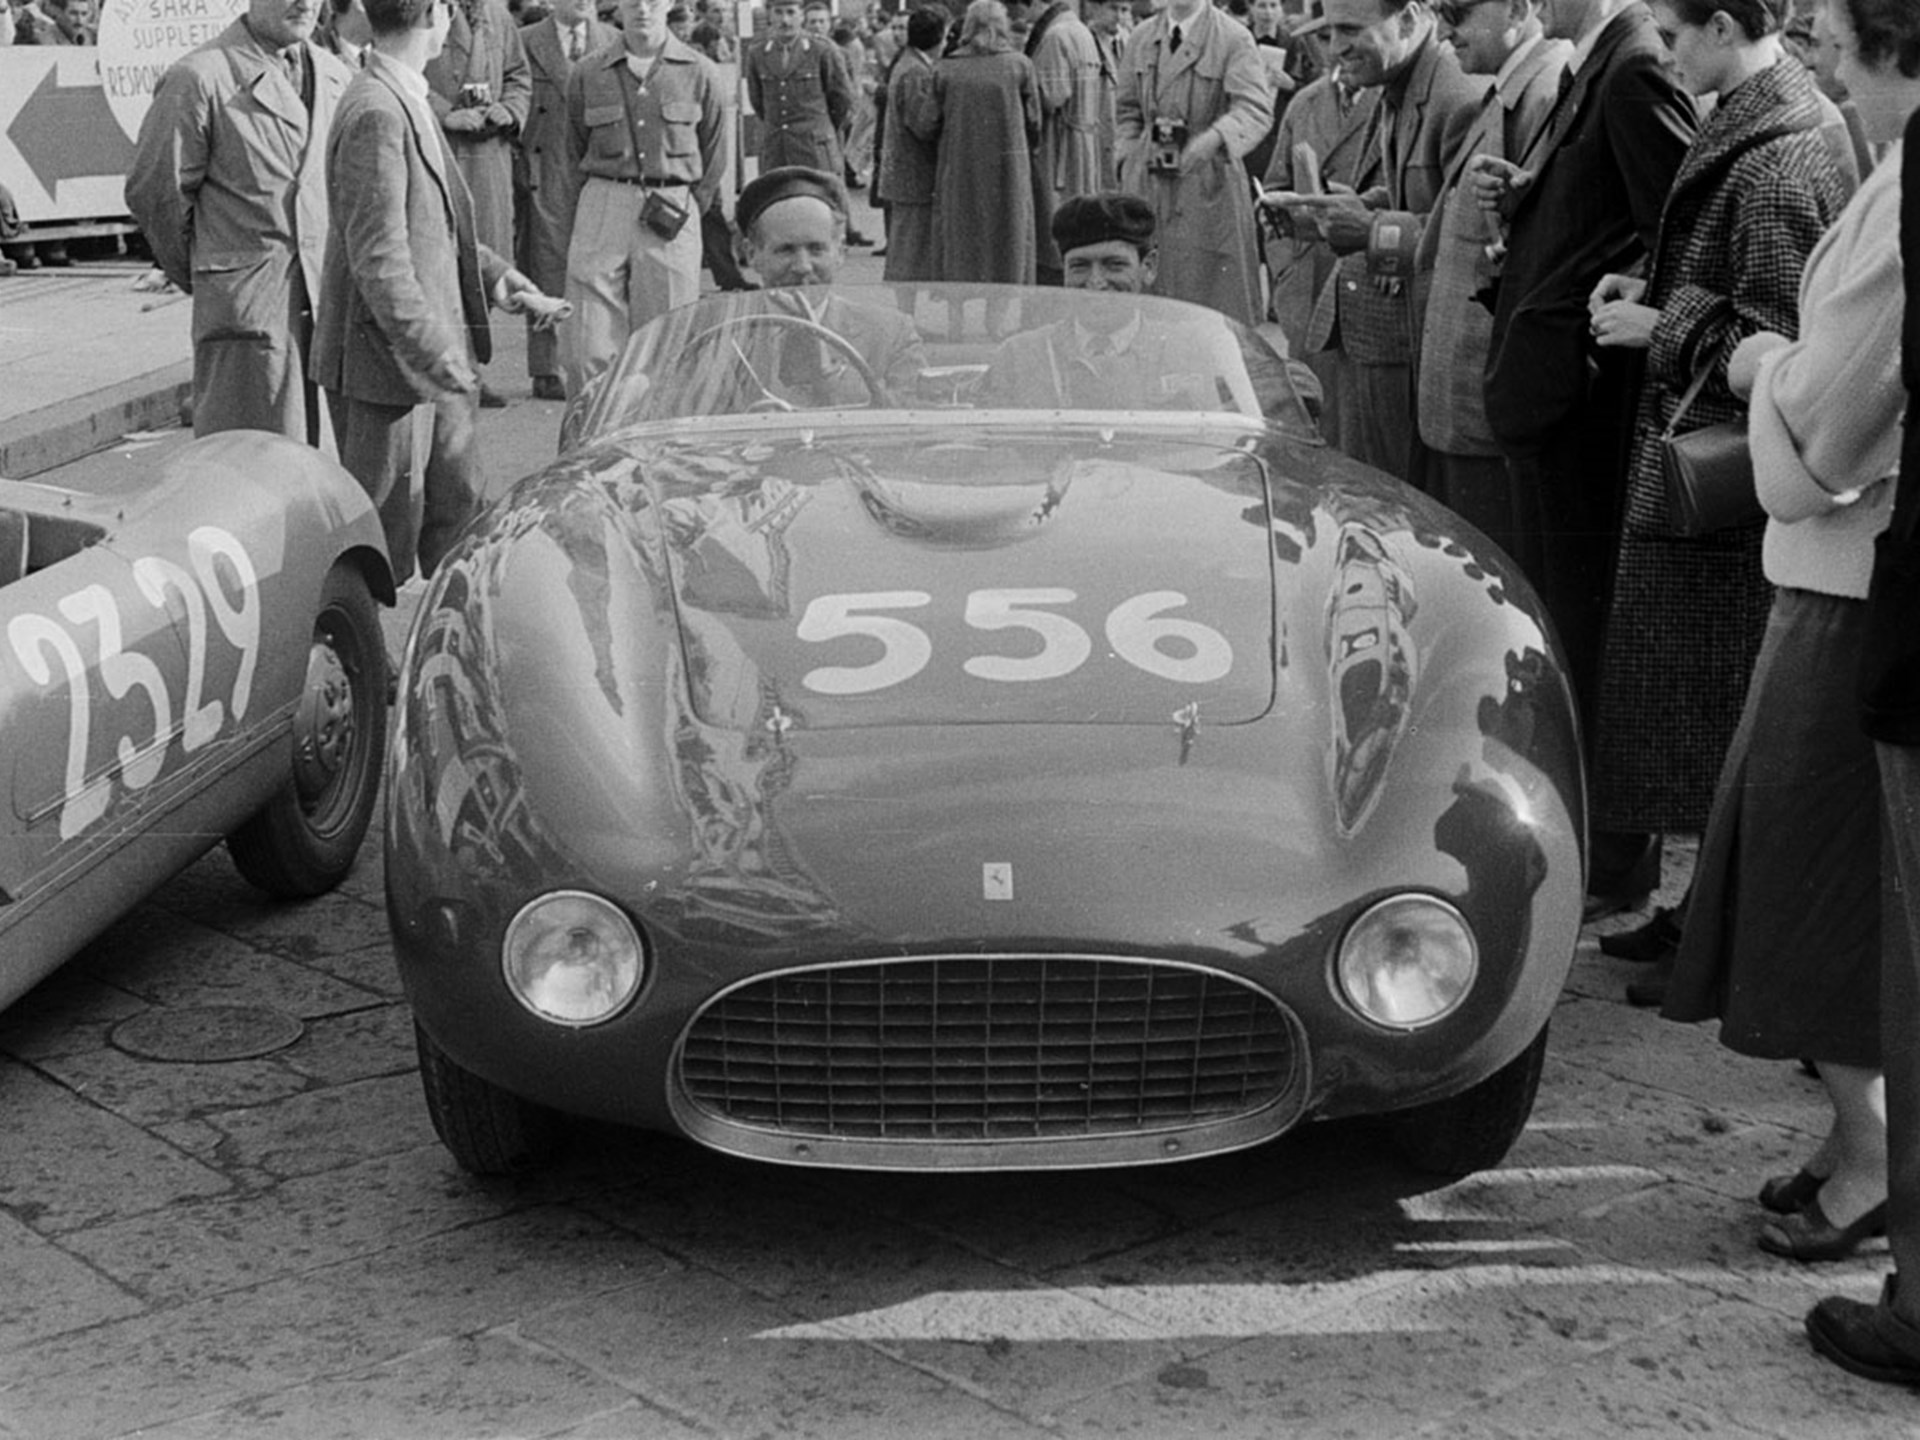 Chassis 0272 at the 1954 Mille Miglia.